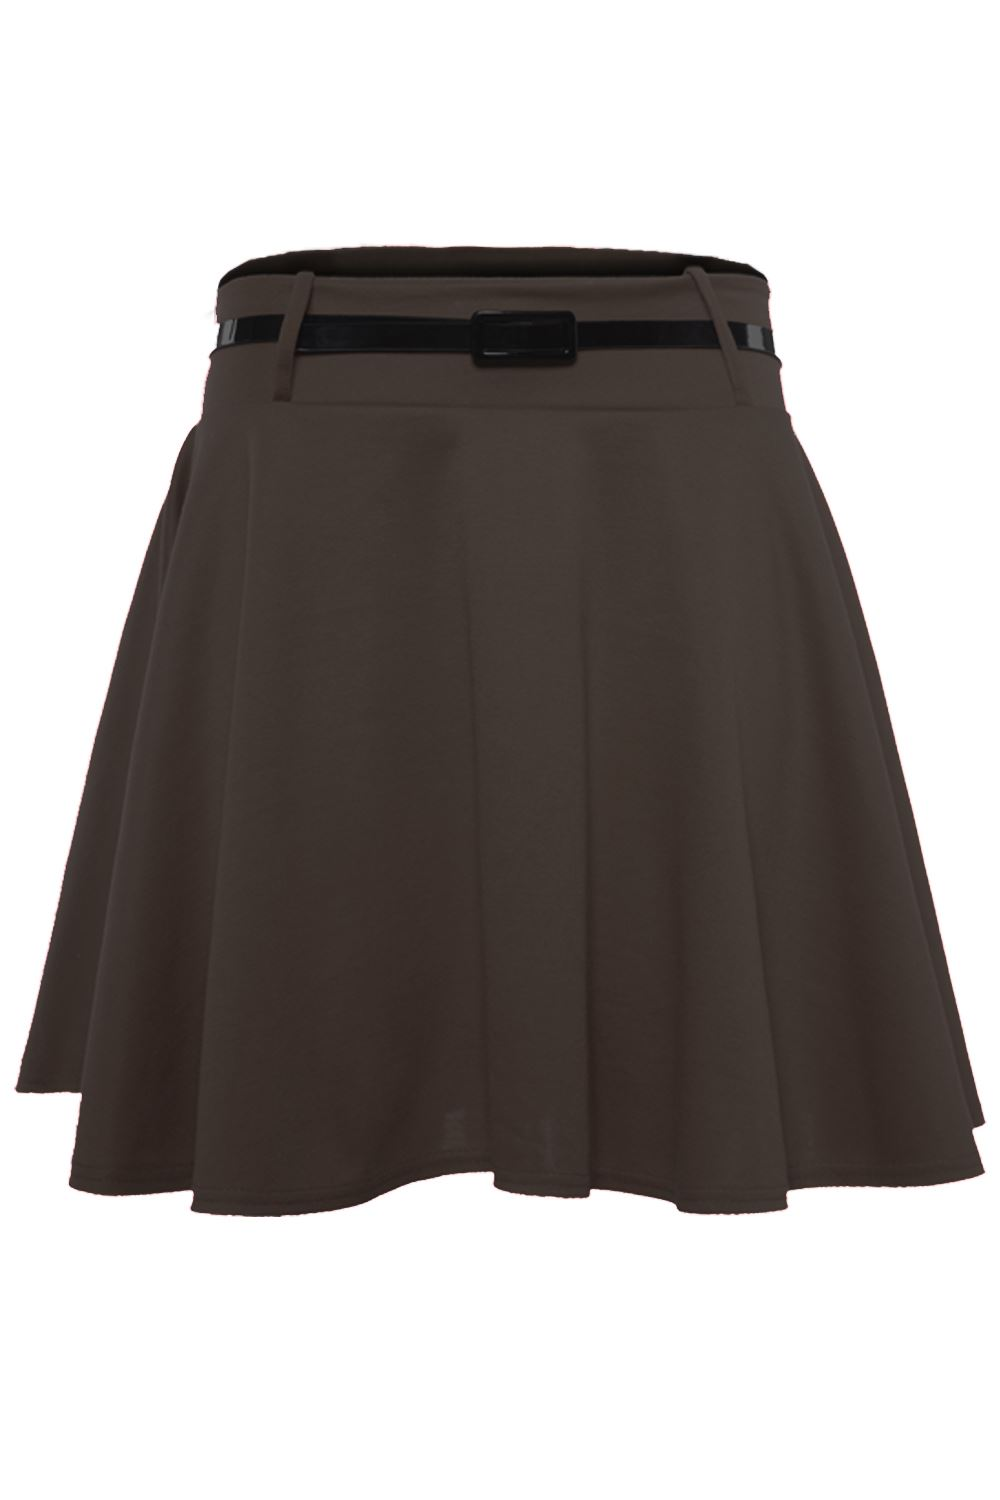 Womens-Ladies-Flared-Flippy-Jersey-Sexy-Party-Belted-Skater-Plain-Mini-Skirt